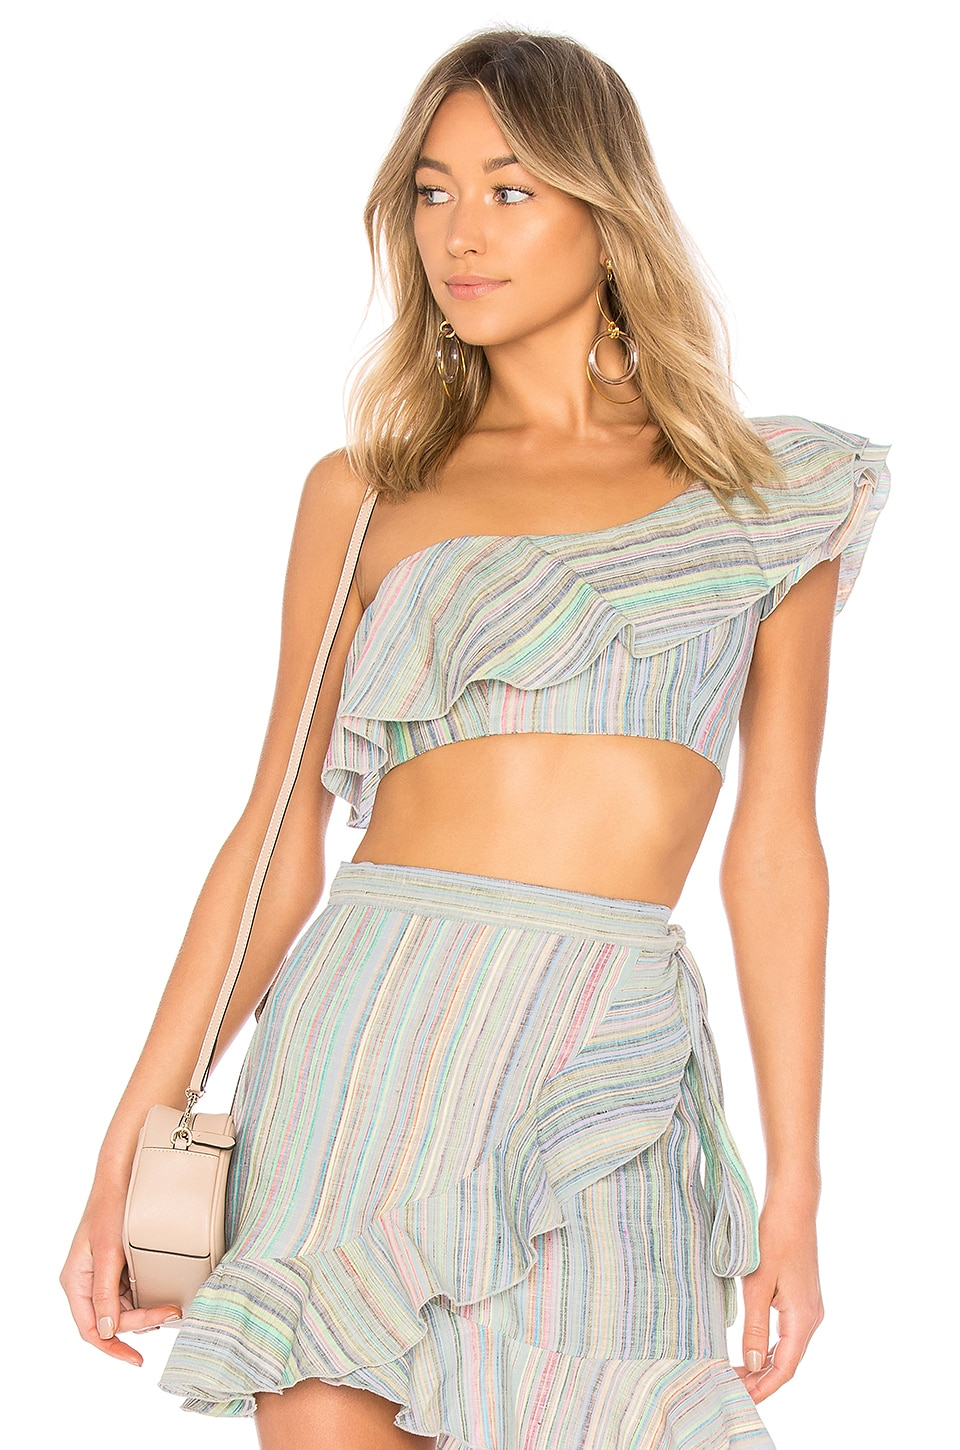 Karina Grimaldi Kari Top in Rainbow Stripe